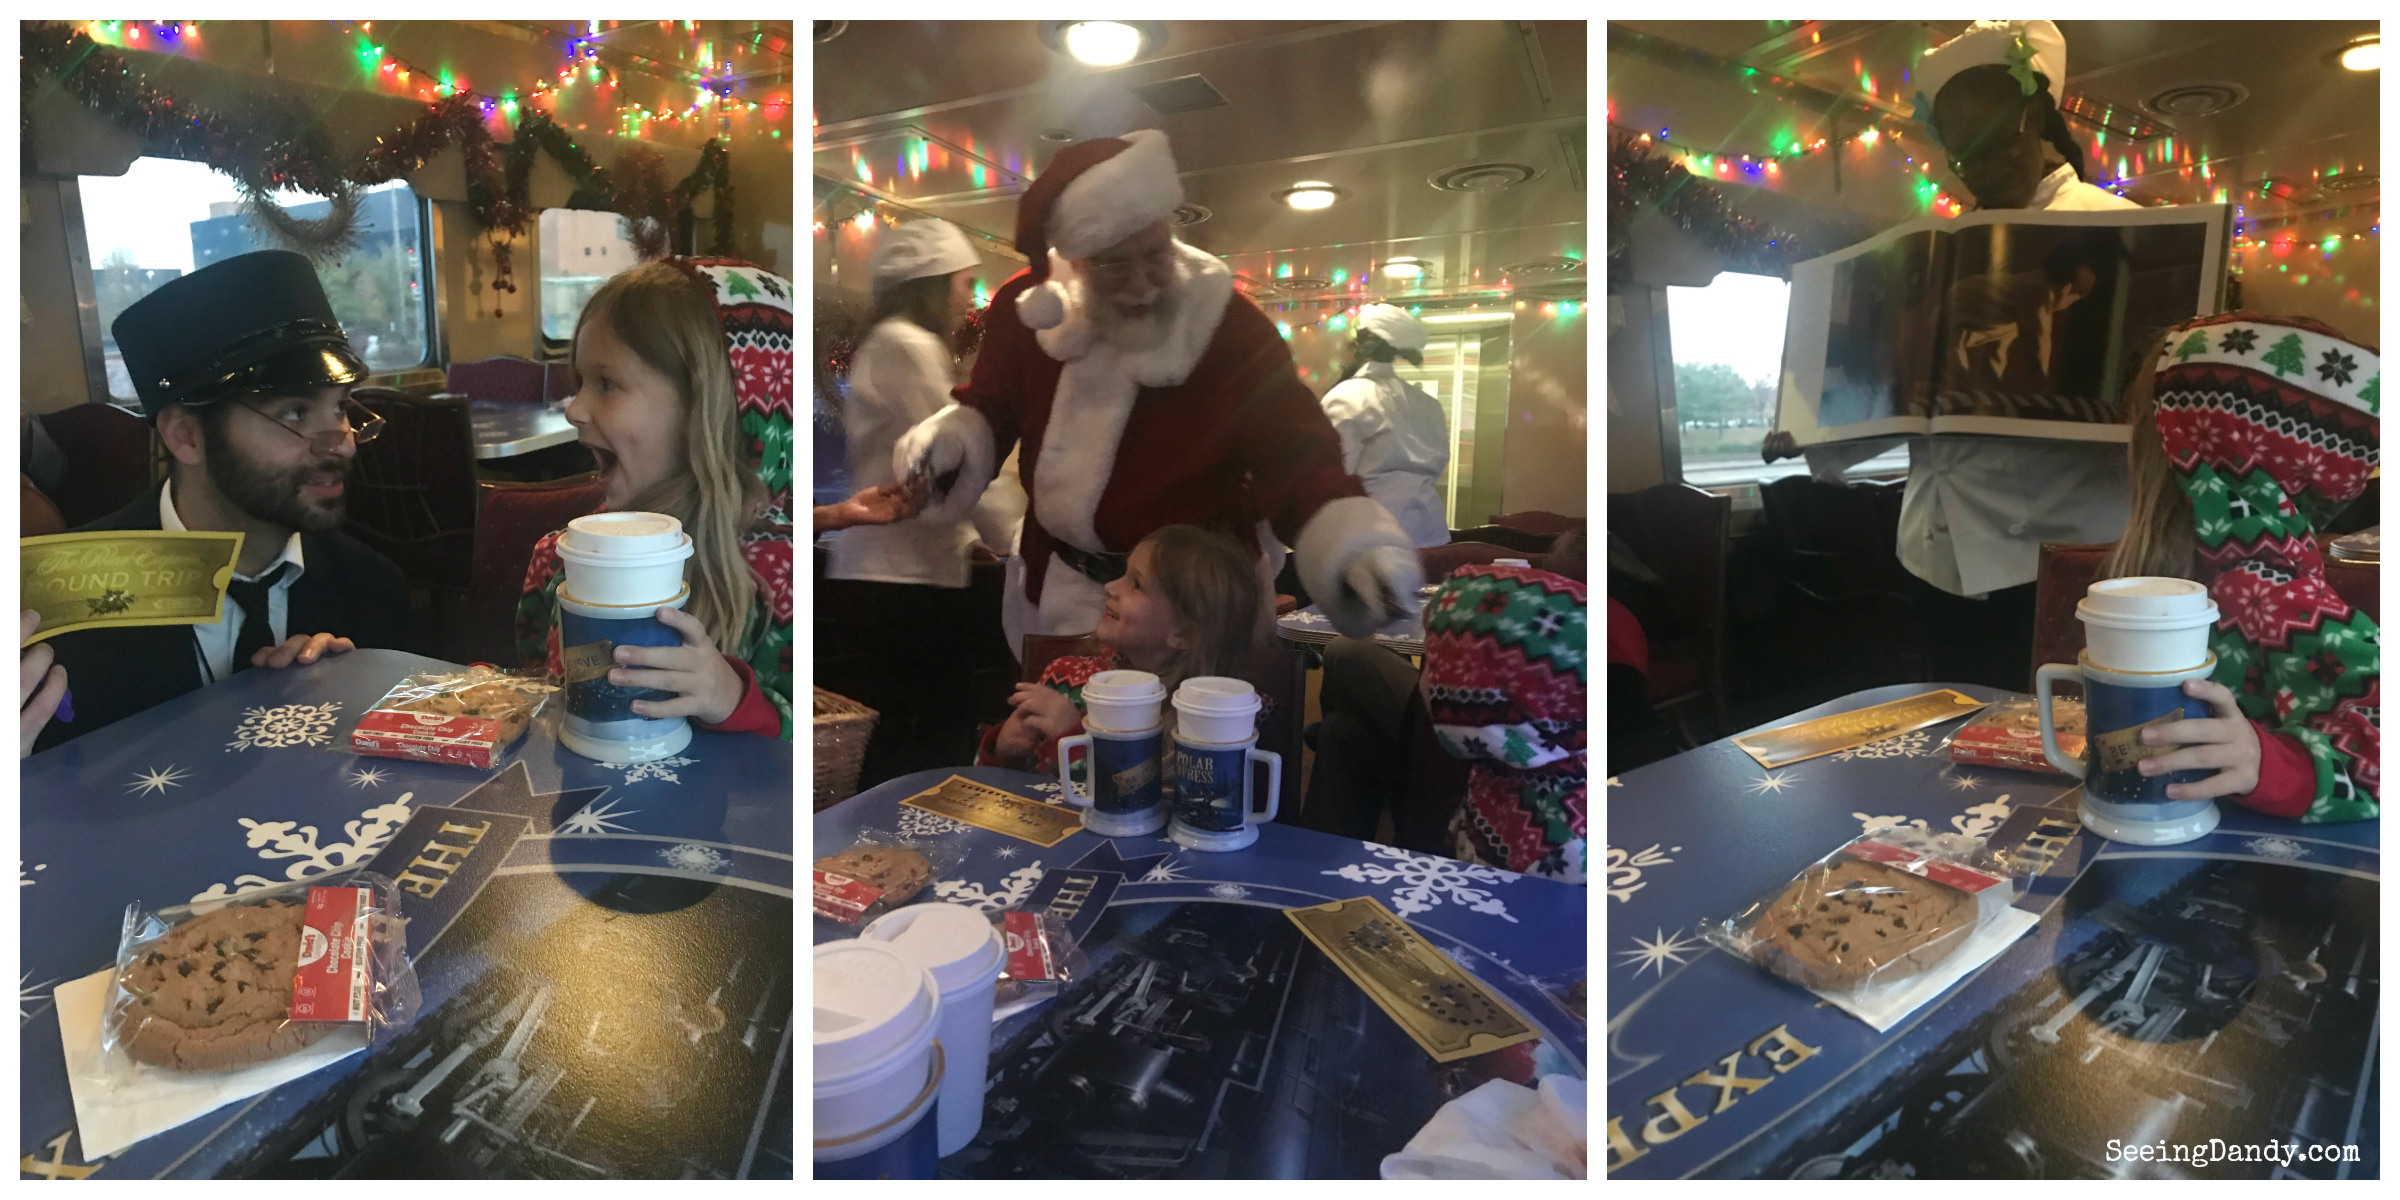 Union Station Polar Express conductor, Santa, and storybook.